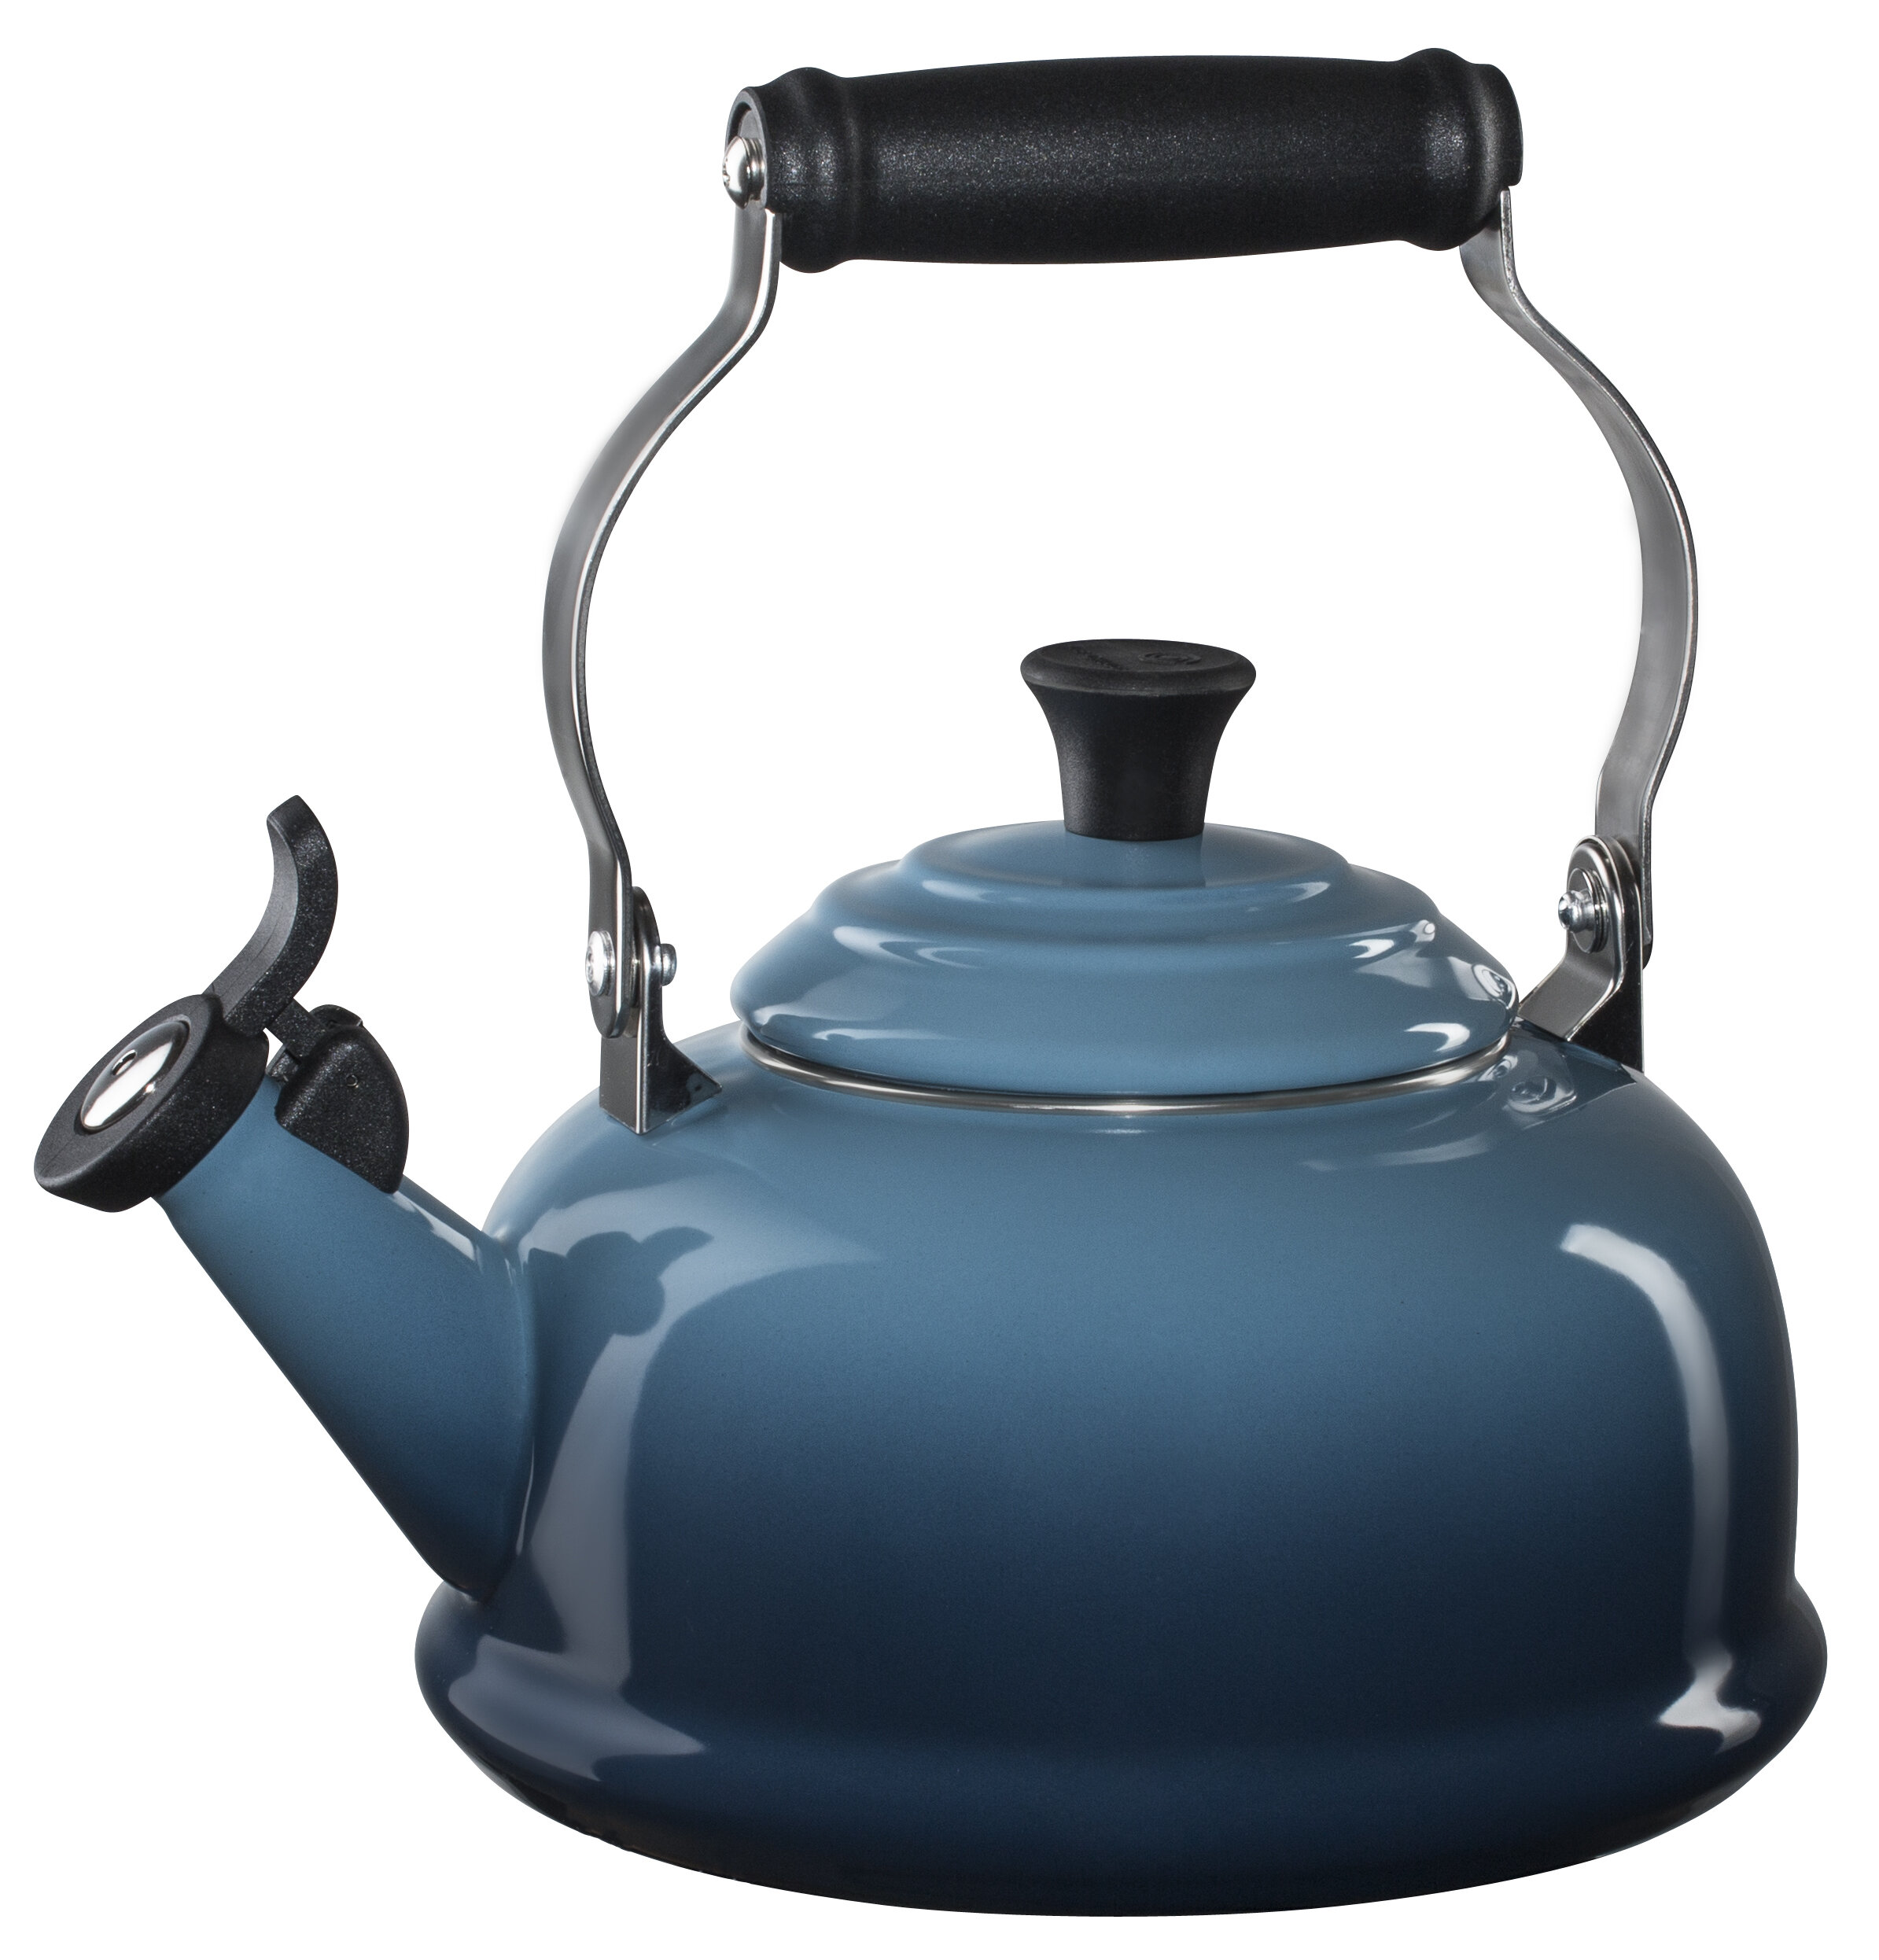 Enamel On Steel 1 8 Qt  Whistling Stovetop Kettle